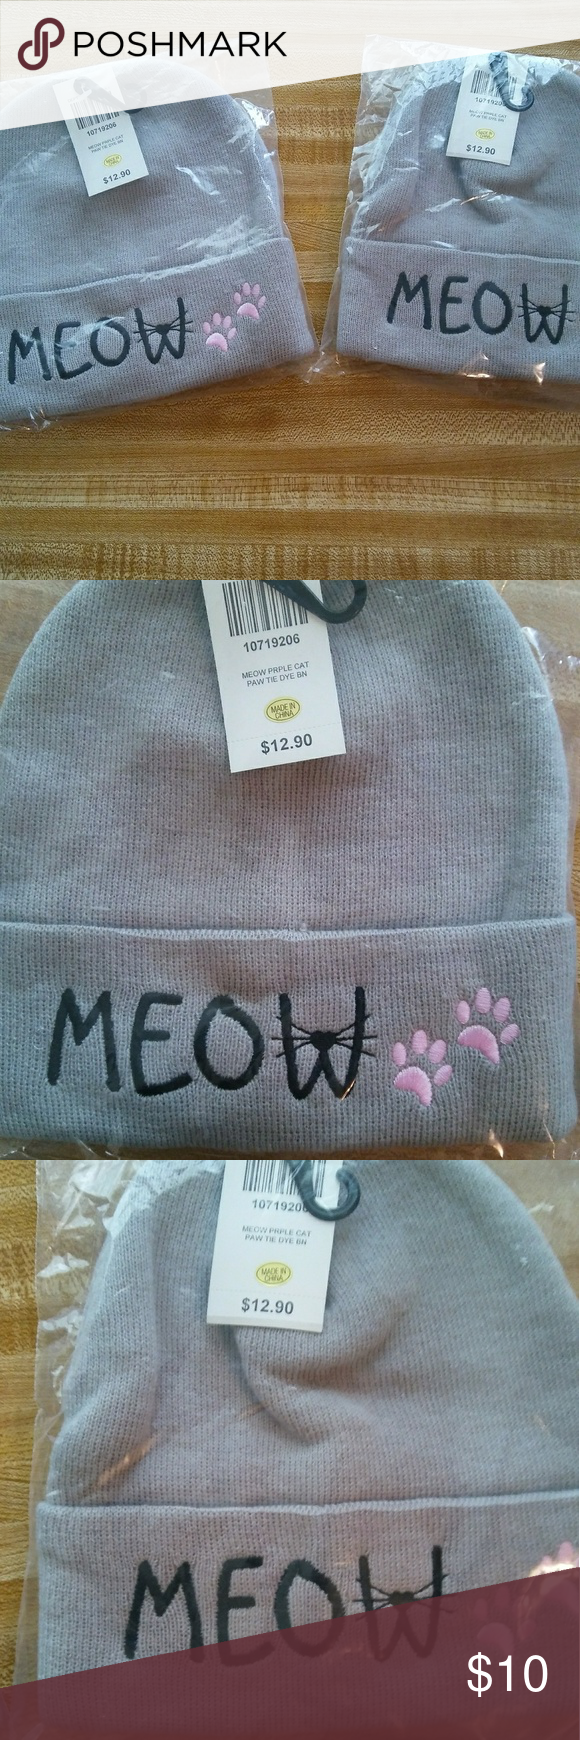 Kitty Beanies Boutique Cat beanie, Accessories hats